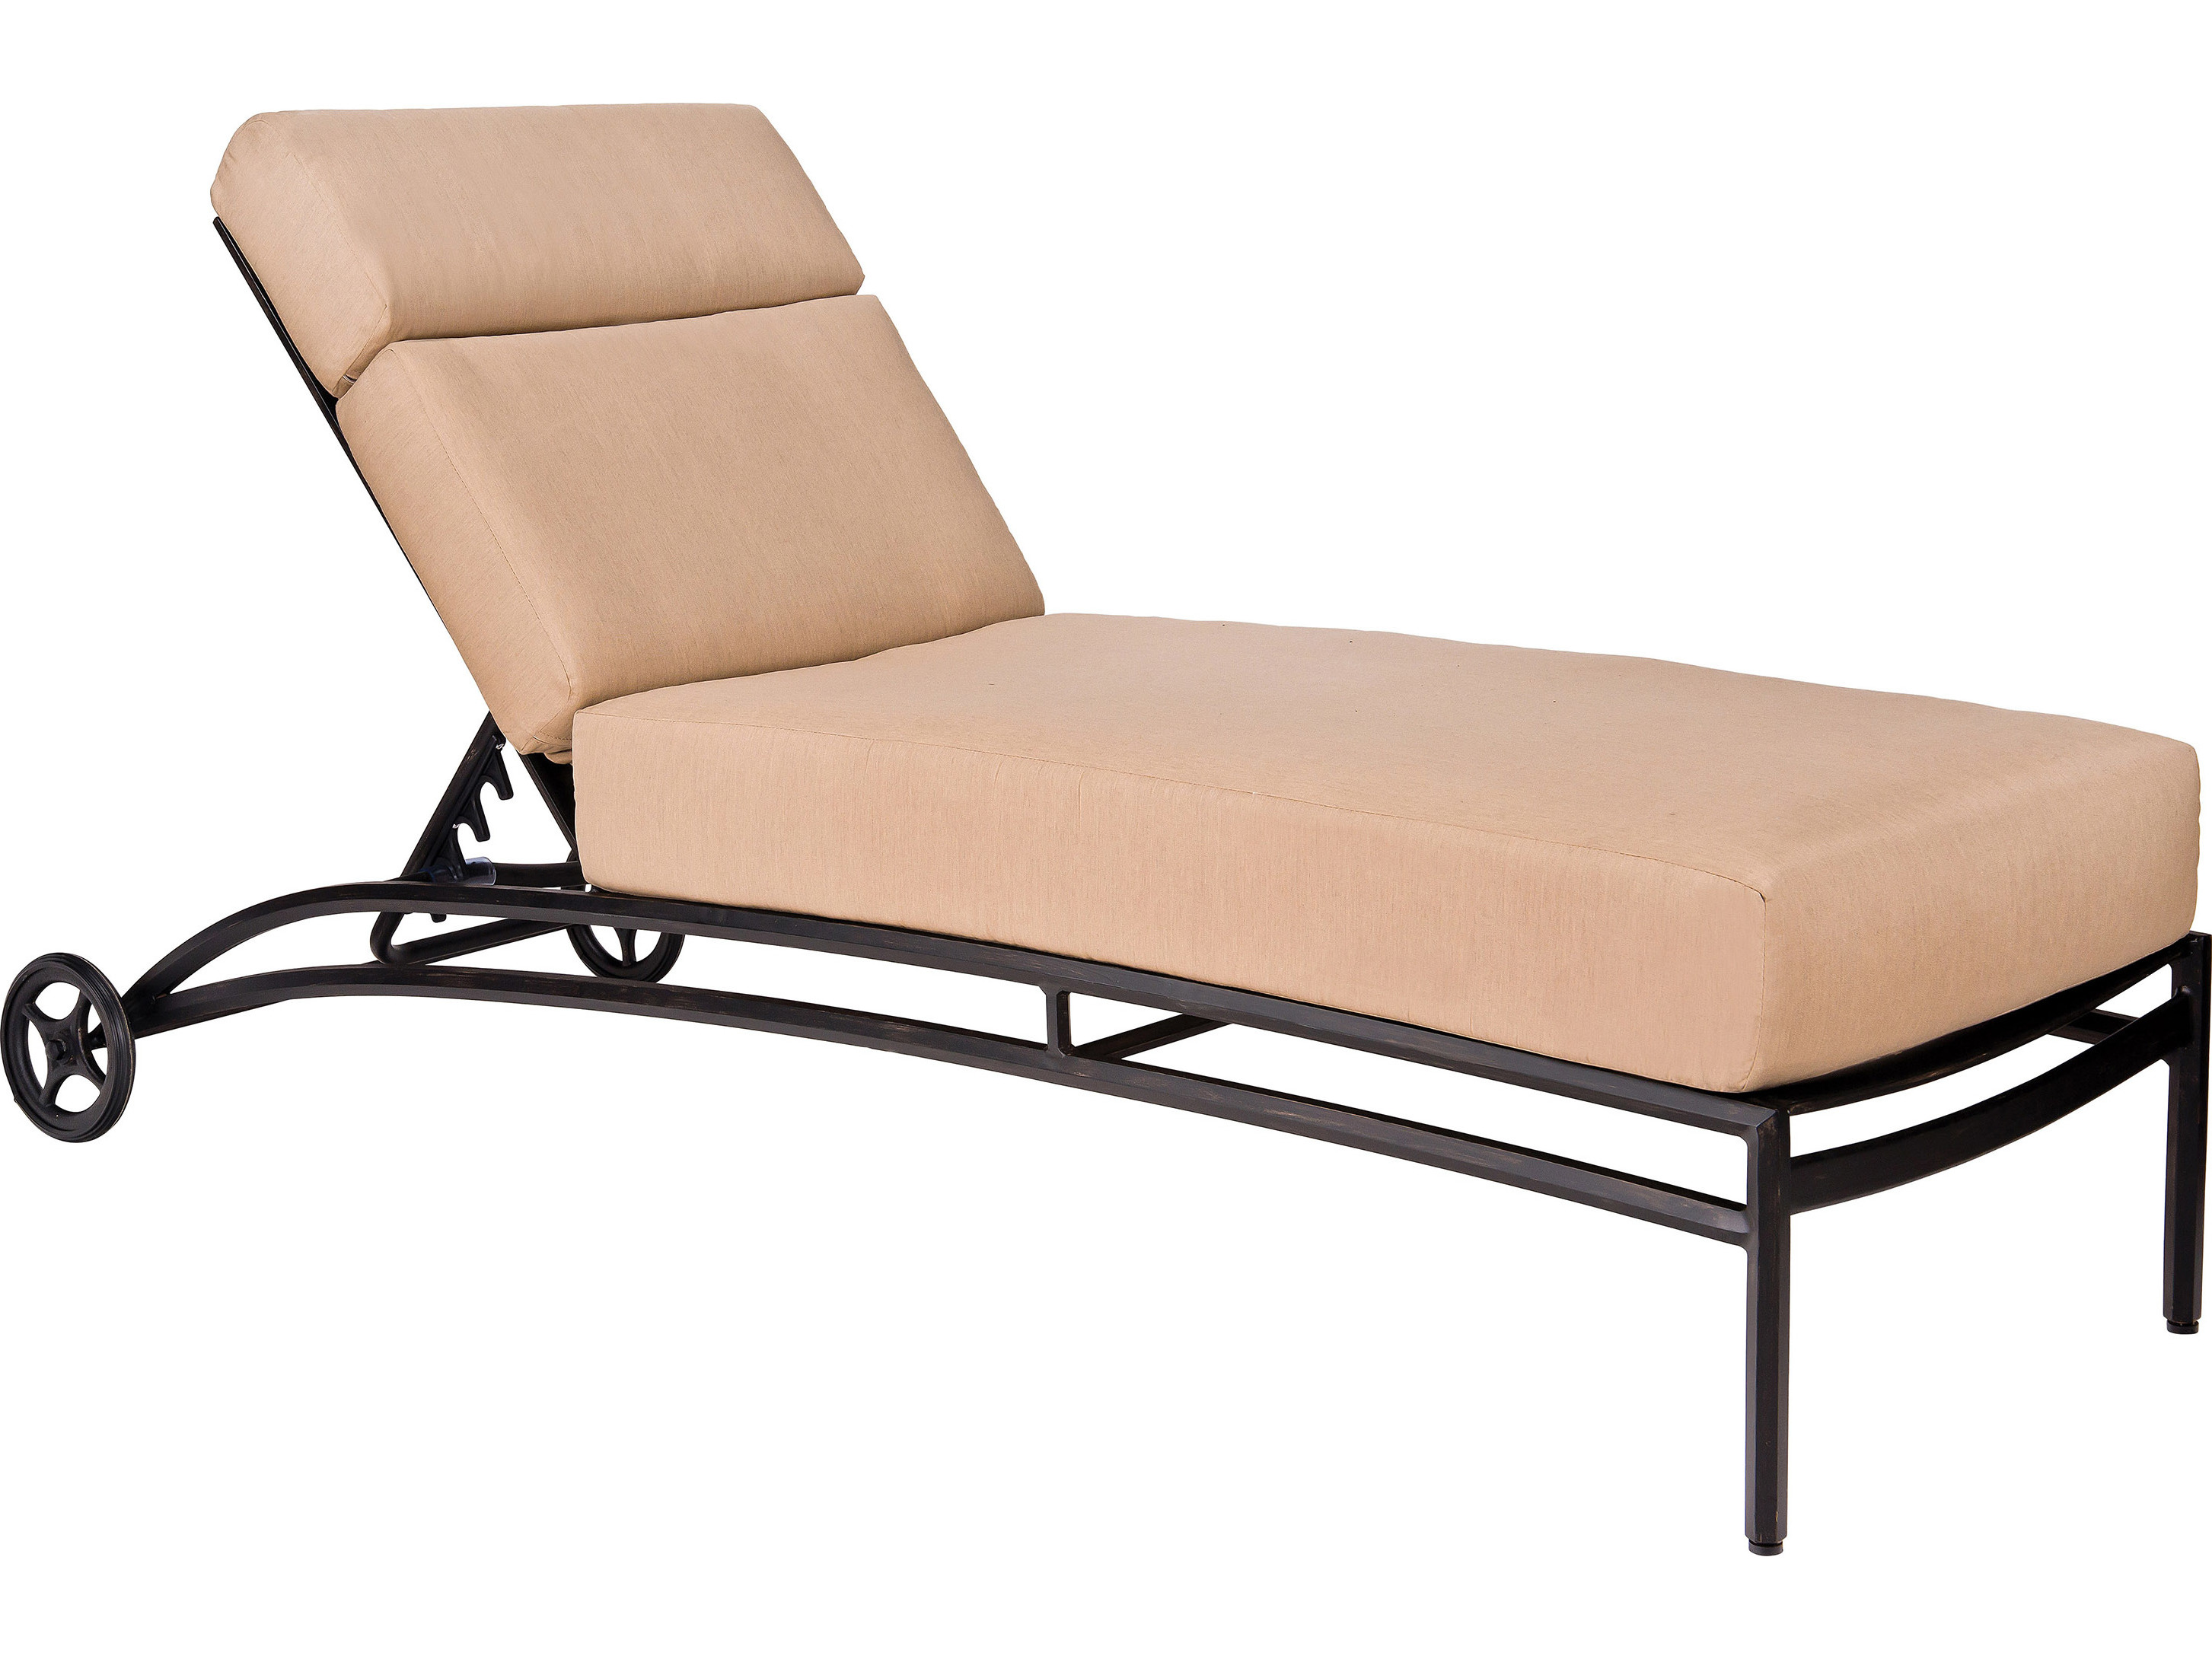 Woodard nob hill aluminum chaise lounge 3u0470 for Aluminum chaise lounges